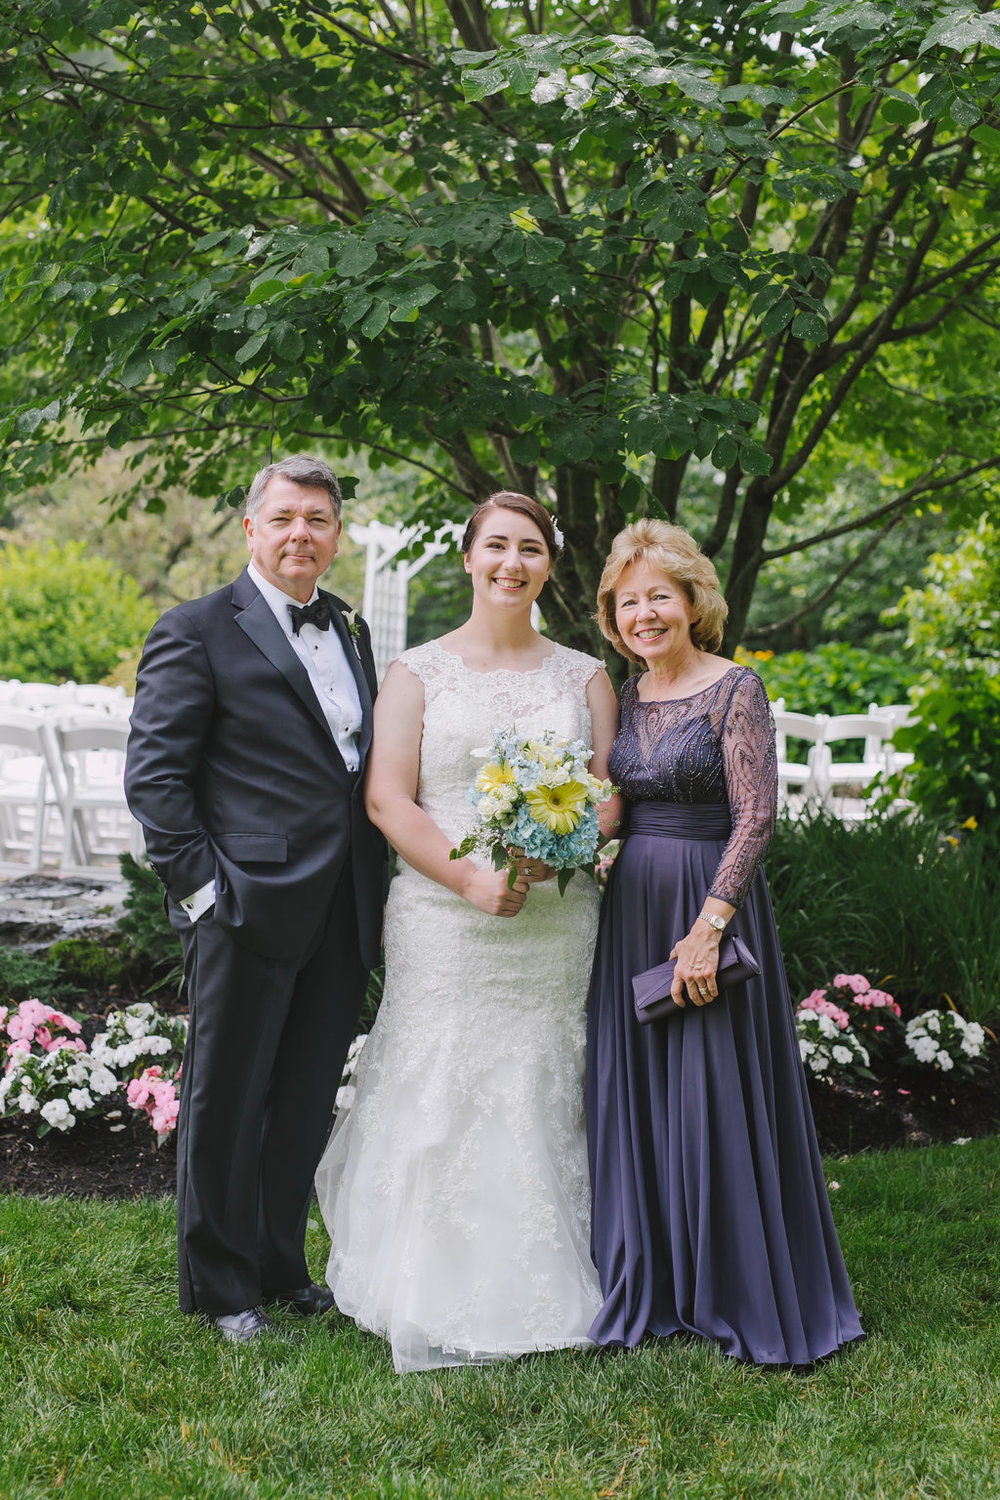 Sarah+JacobWedding-EmilyTebbettsPhotography--226.jpg